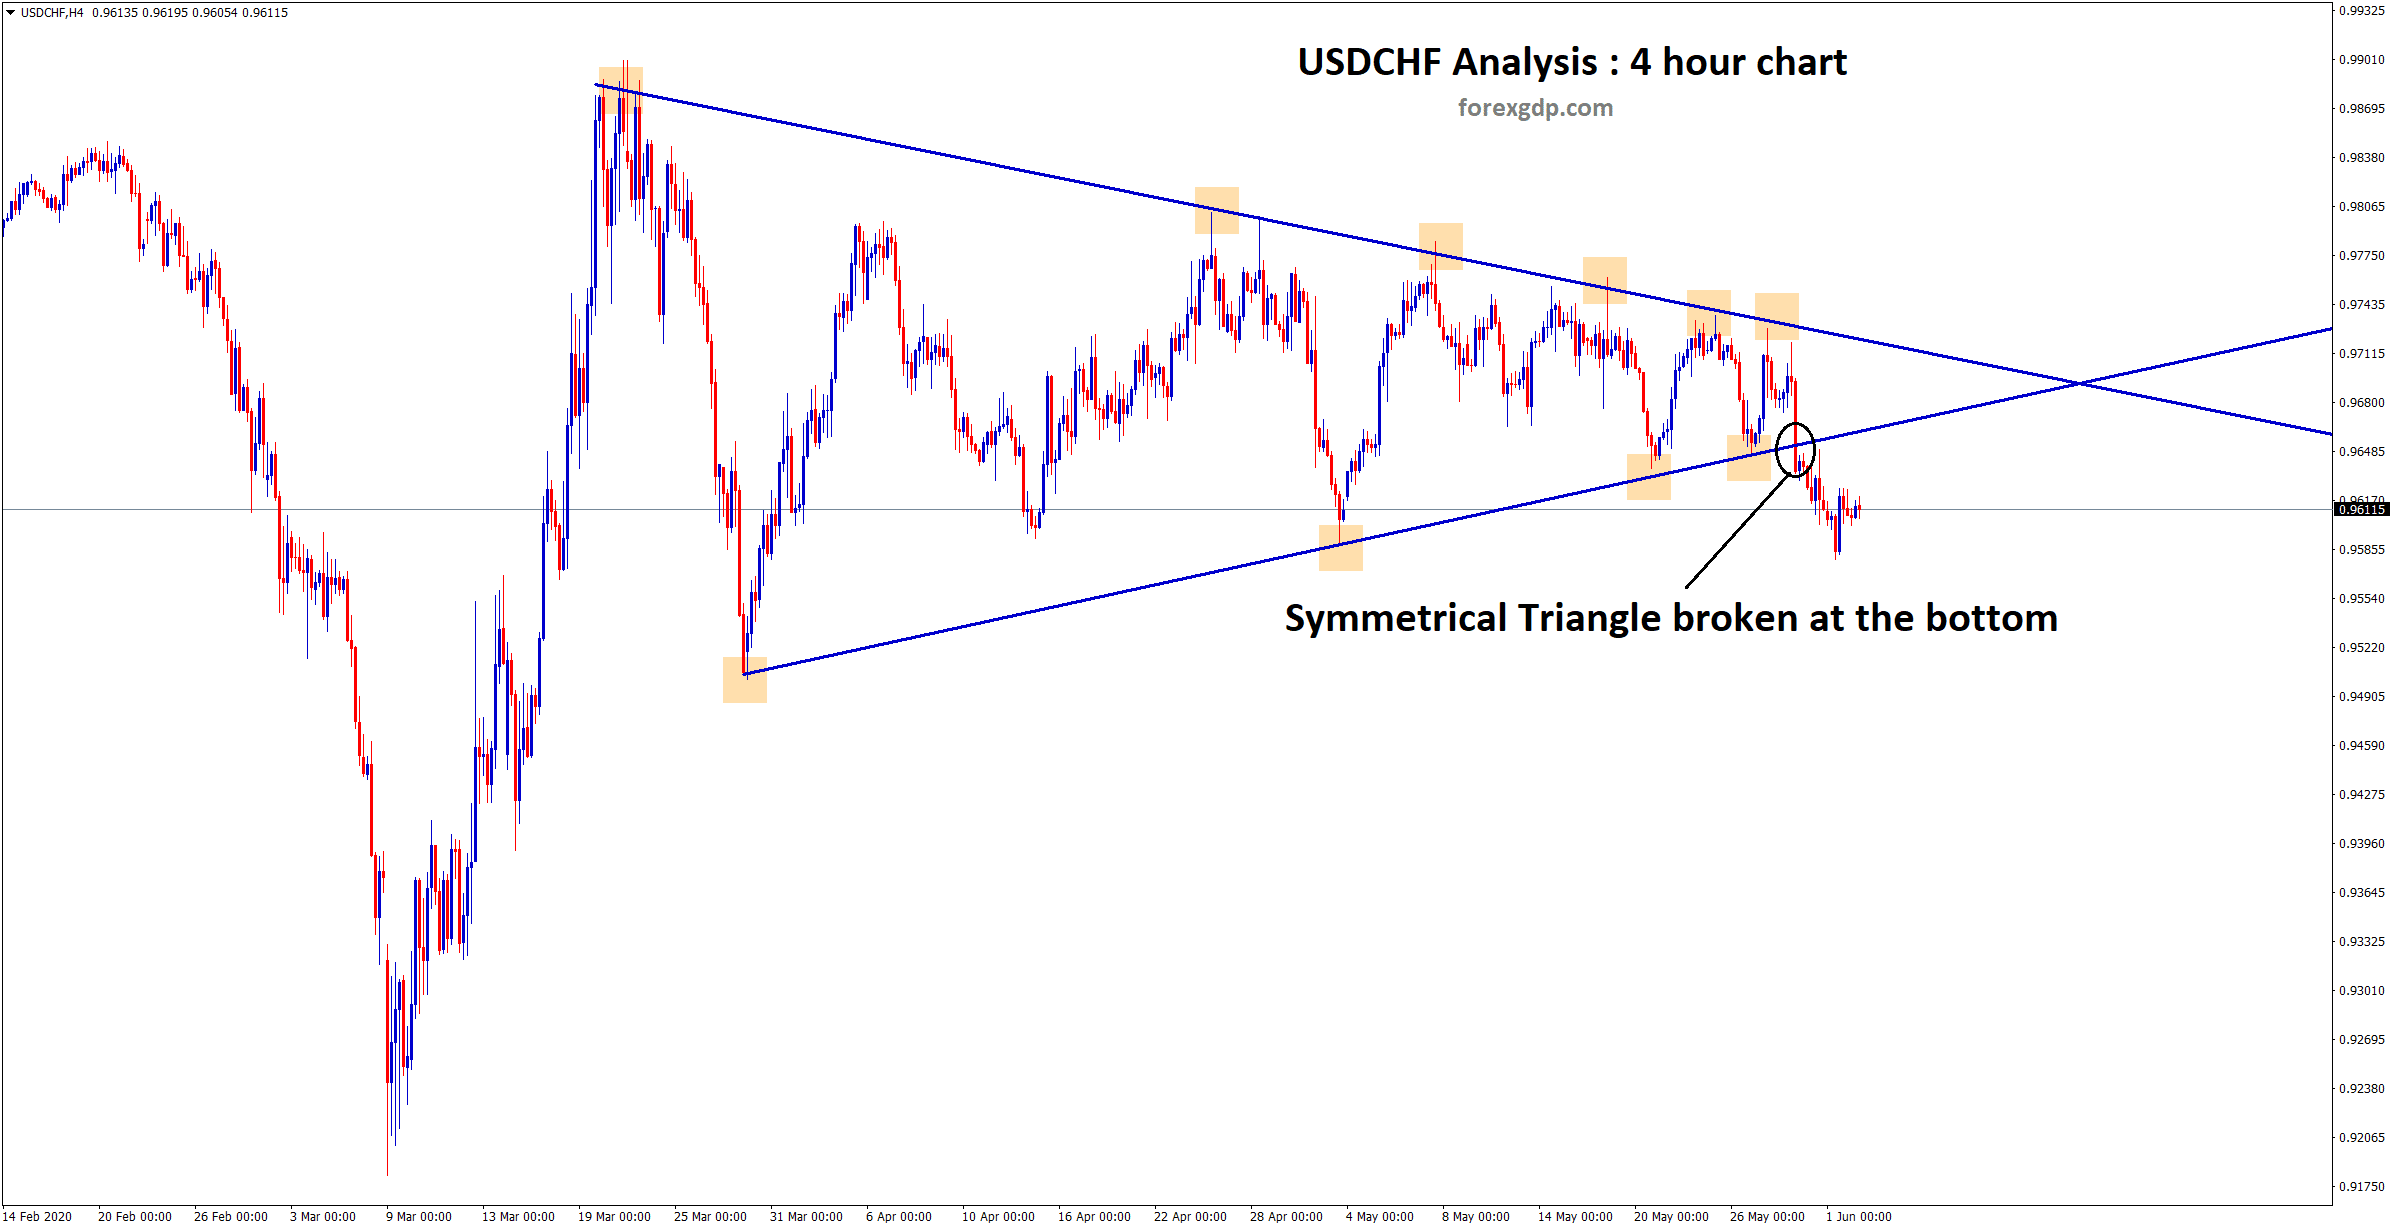 USDCHF Symmetrical triangle broken at the bottom level in 4 hour chart